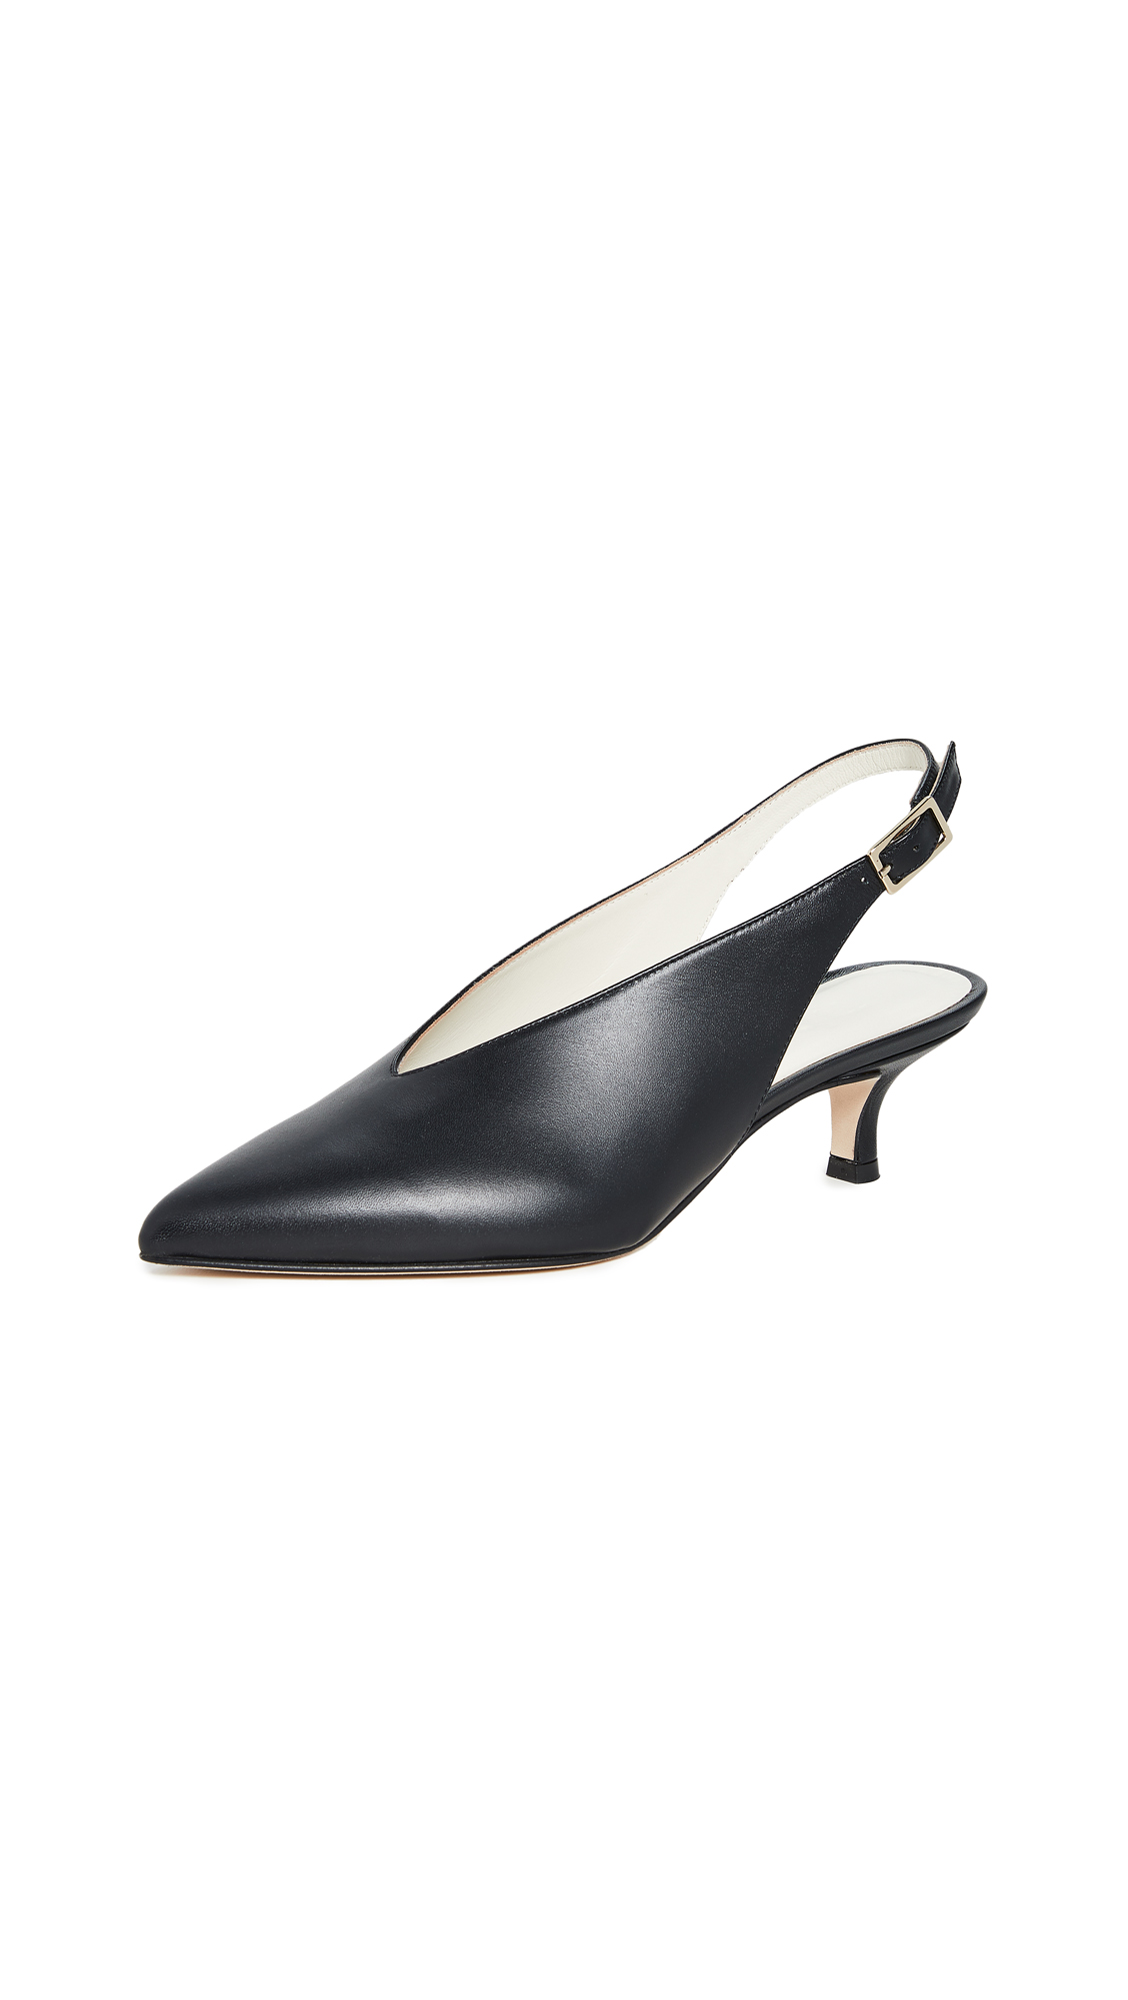 Tibi Lia Slingback Pumps – 50% Off Sale